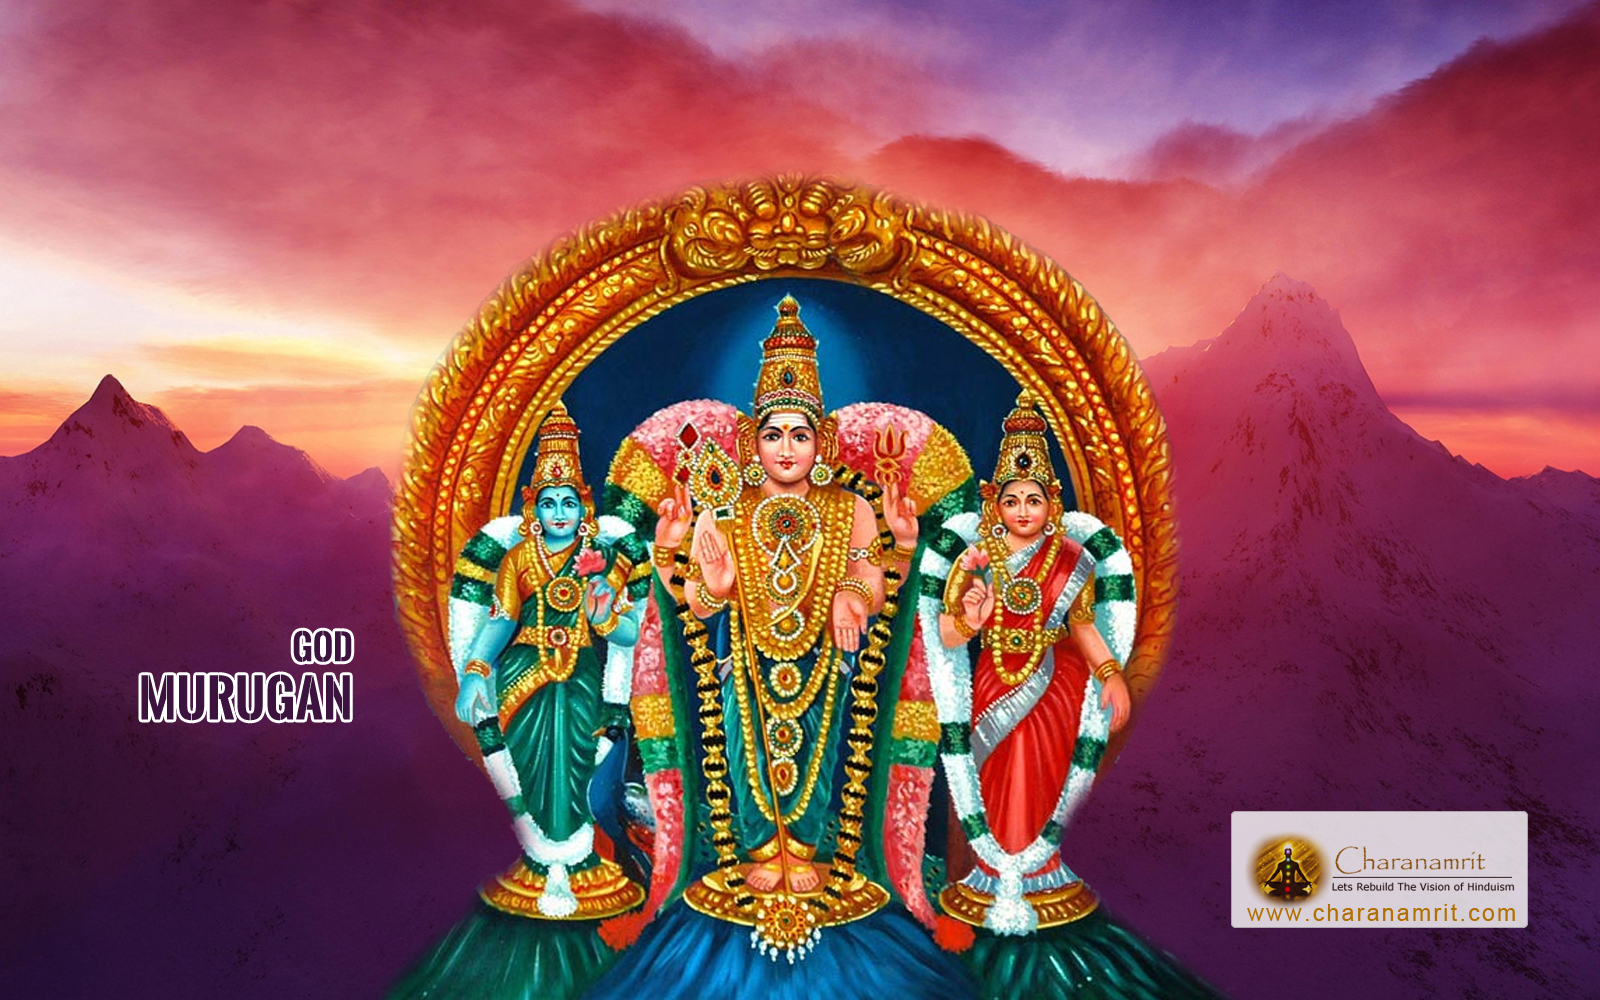 god murugan wallpapers free download | Free HD Wallpaper Download